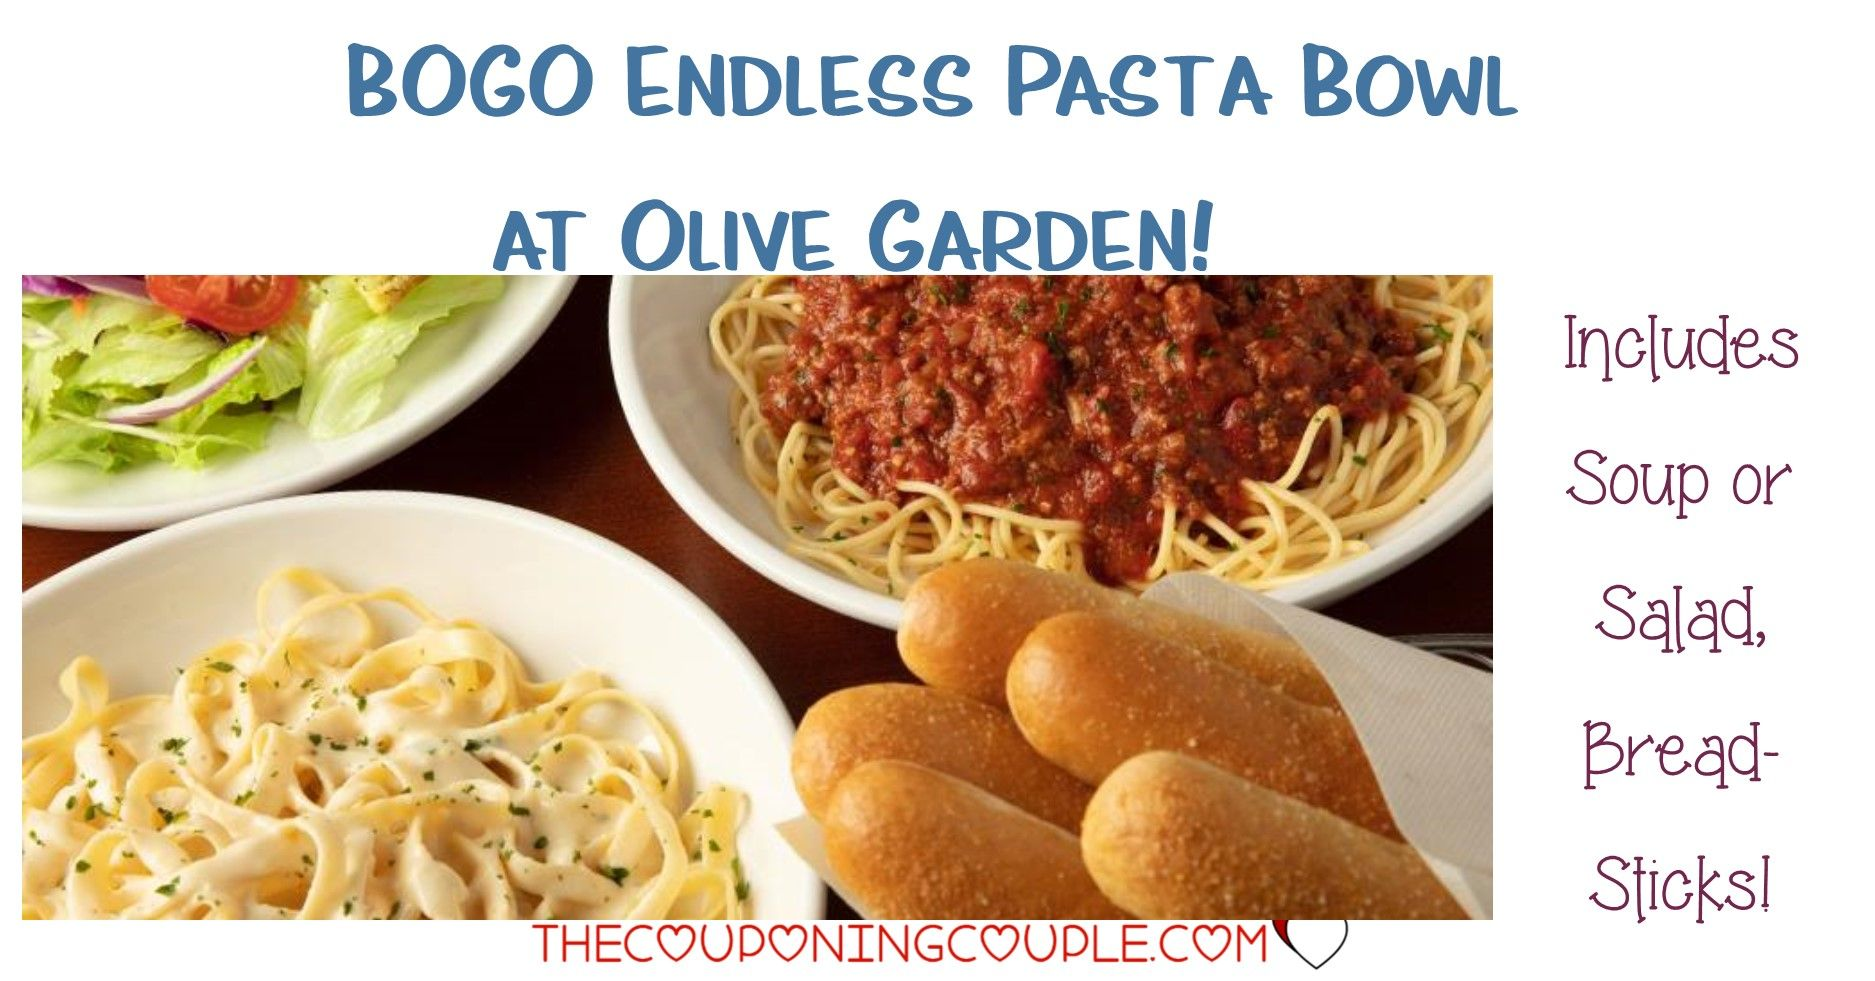 It's Back! Buy One Entree To Go, Get One Free at Olive